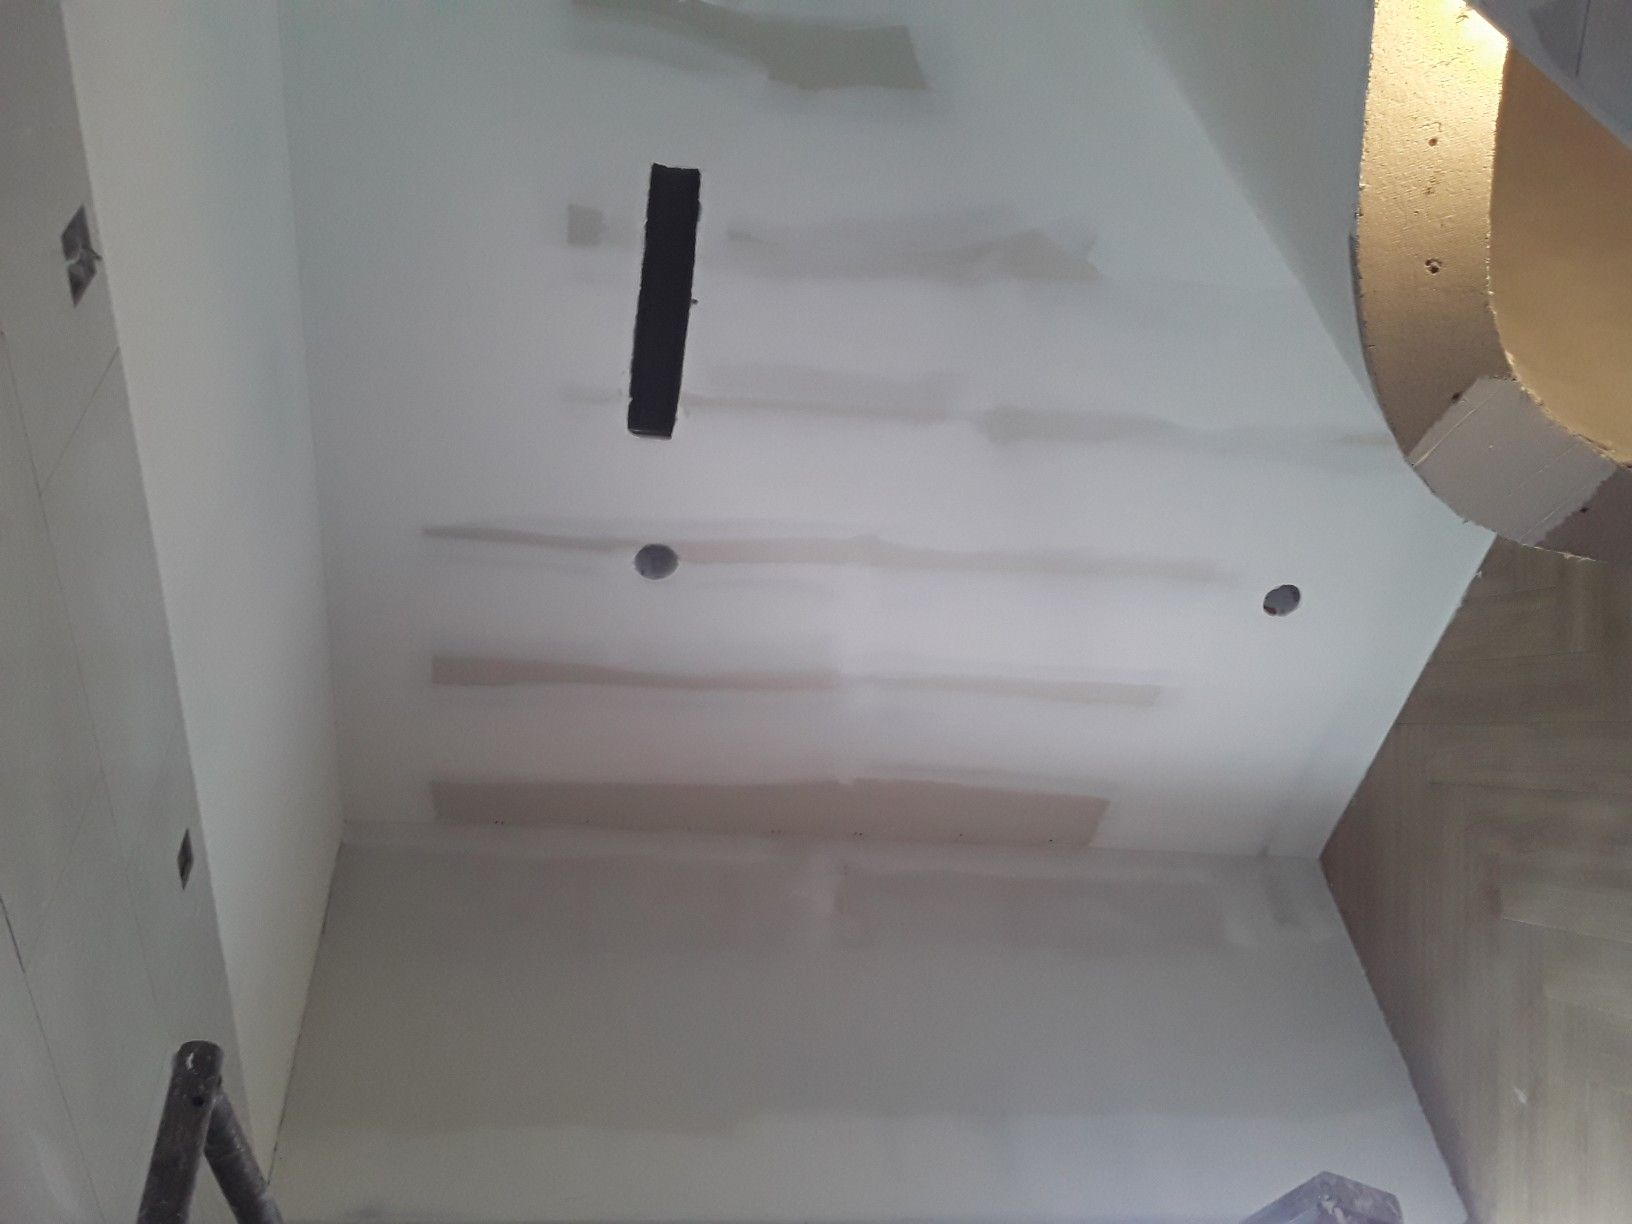 General Drywall Contractor In 2020 Drywall Contractors Drywall Building Materials